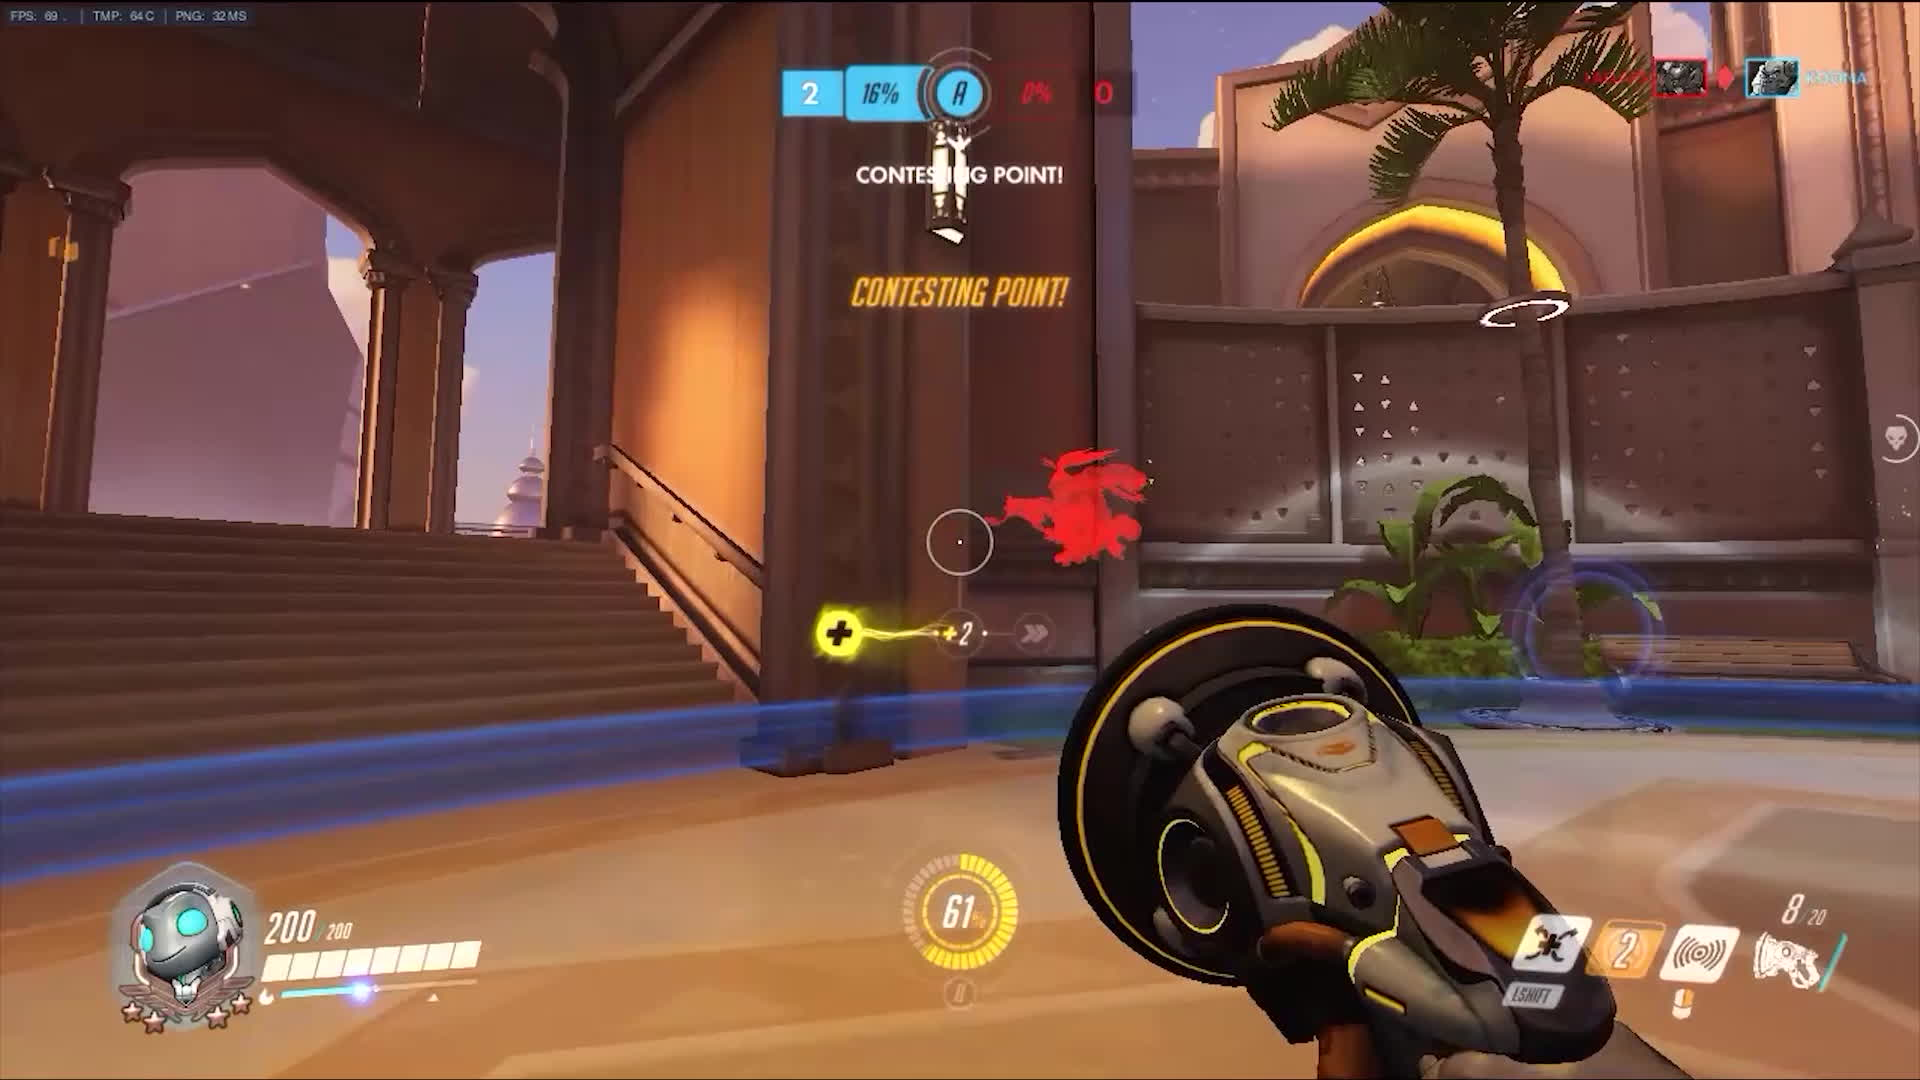 Overwatch_Memes, Overwatchmemes, lucio, BOOP BOOP outta my way GIFs